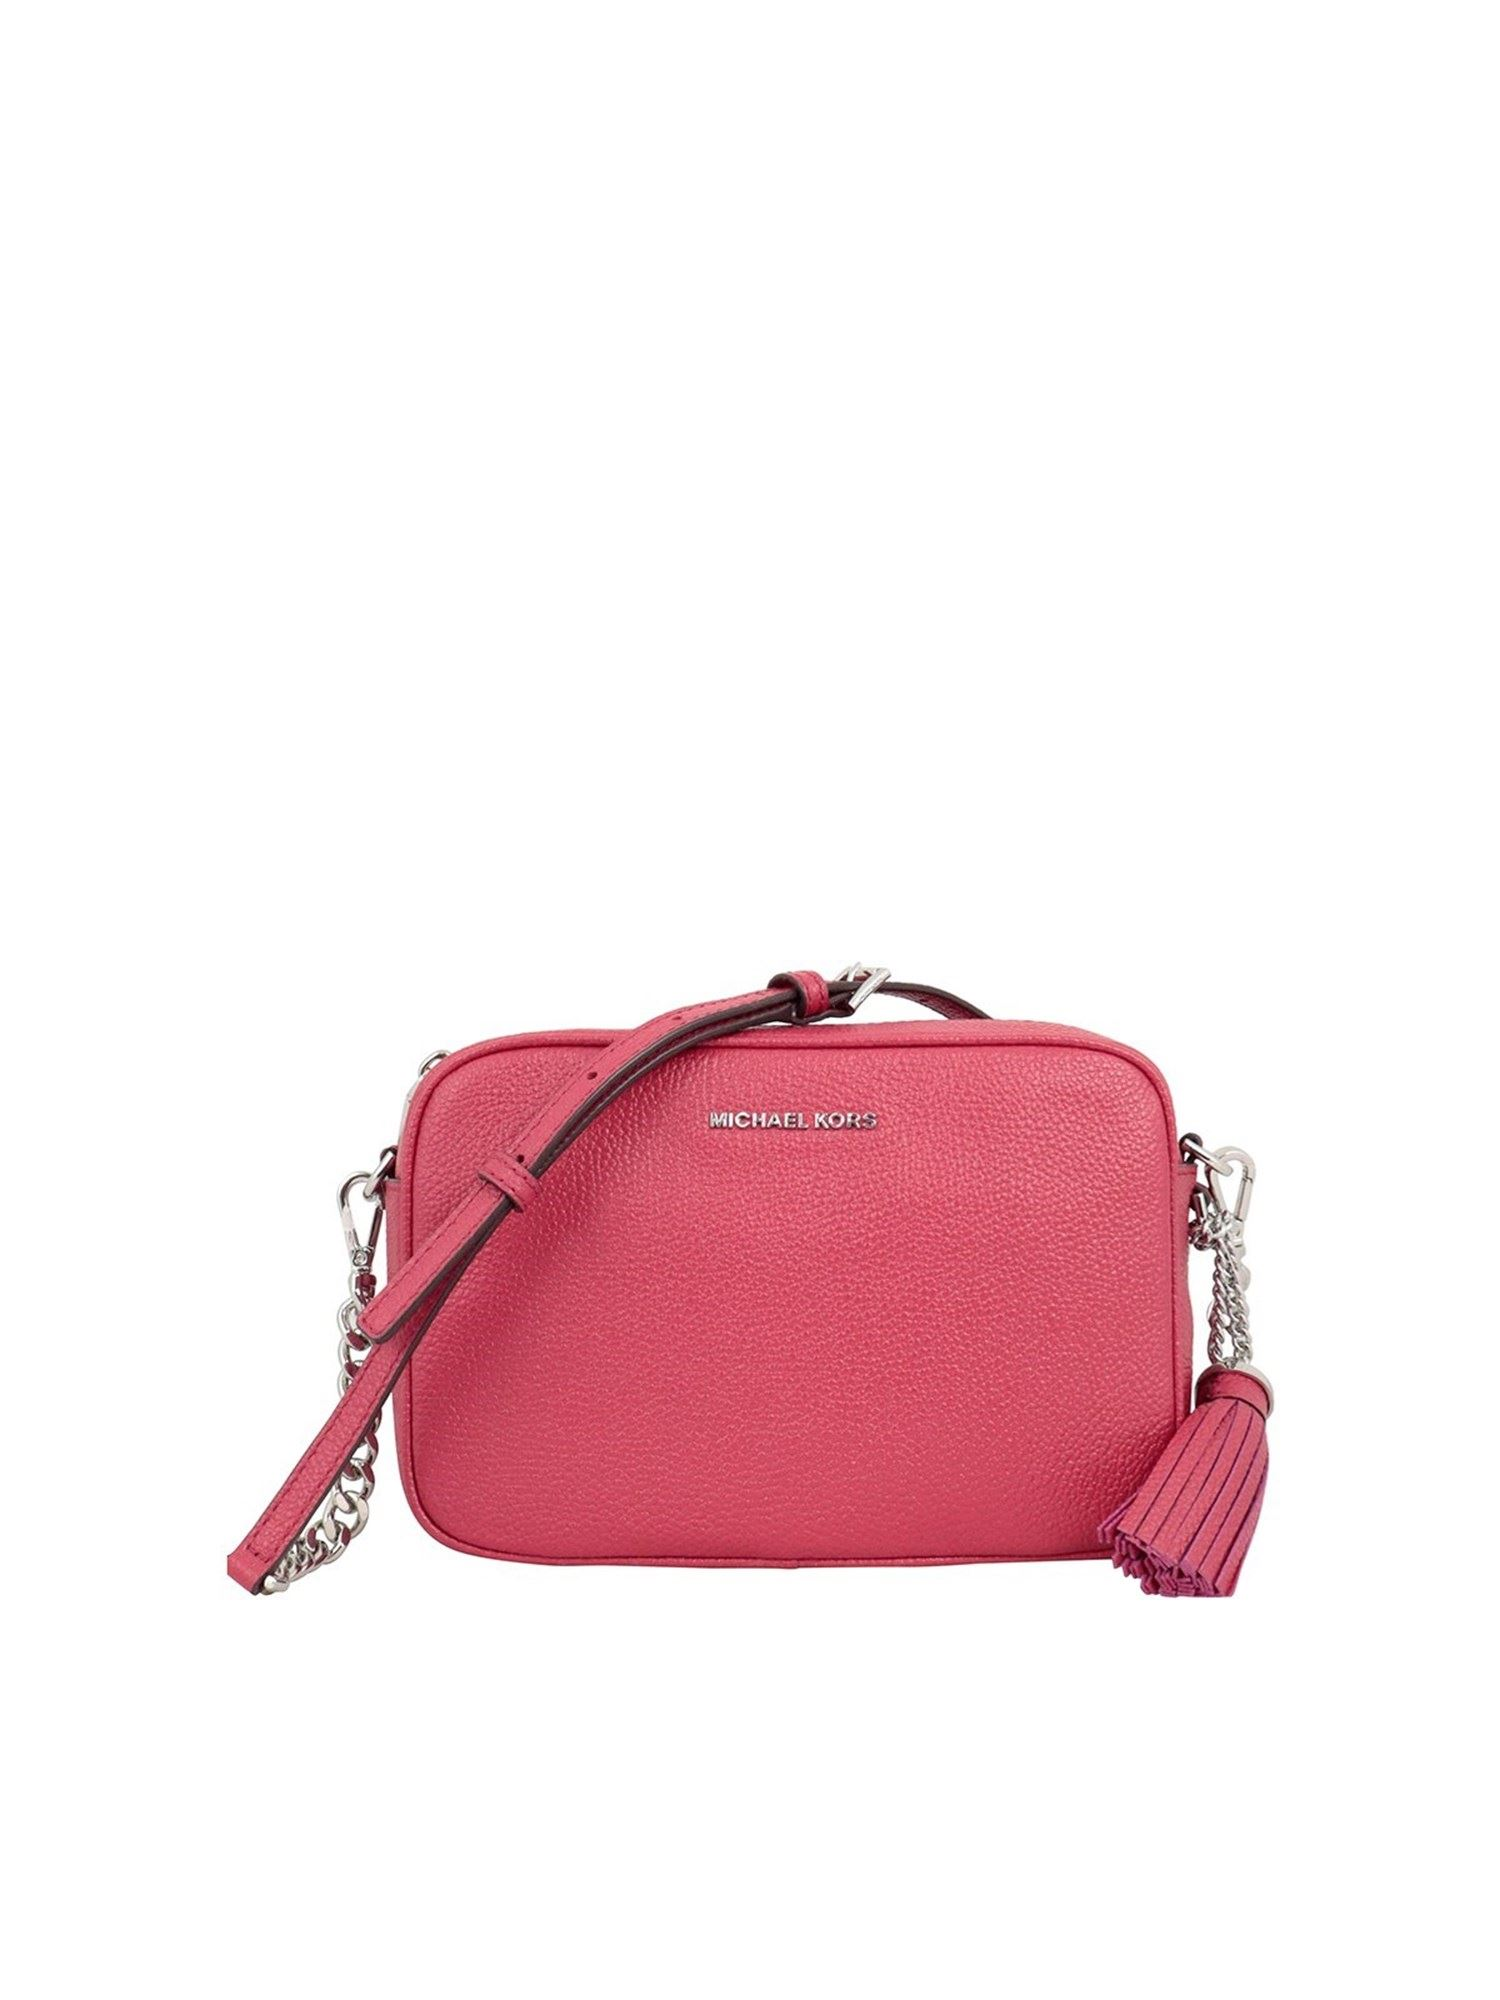 Michael Kors GINNY LEATHER CROSS BODY BAG IN PINK